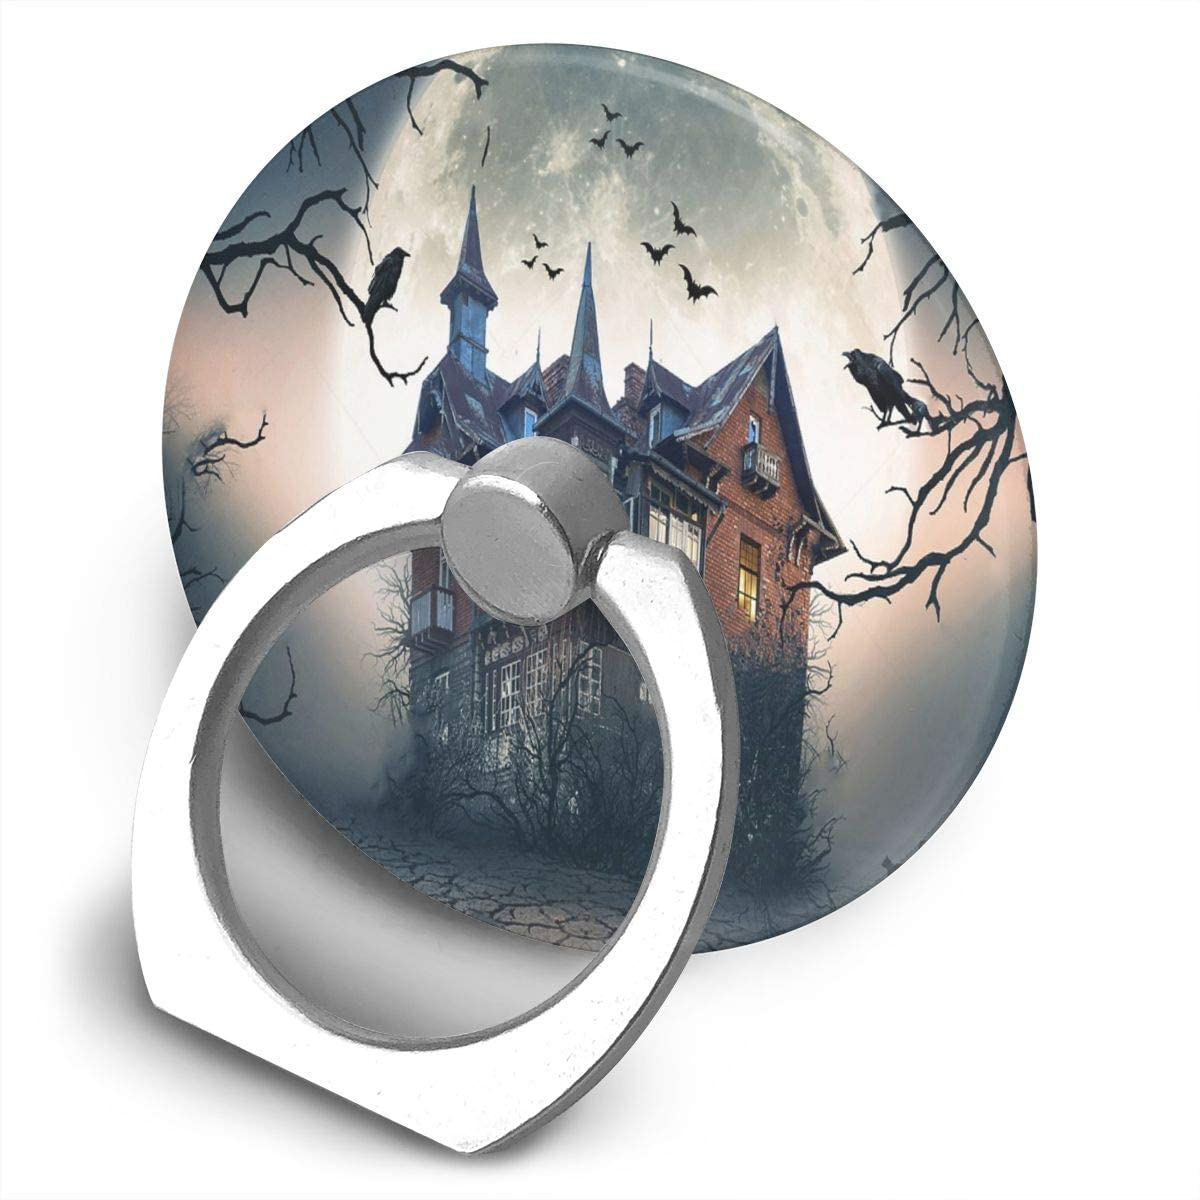 Cell Phone Ring Holder Stand Haunted House with Dark Horror Atmosphere Adjustable 360°Rotation Round Universal Finger Grip Loop Kickstand with Silver Metal Phone Holder for Women Kids Men Ladies Smar